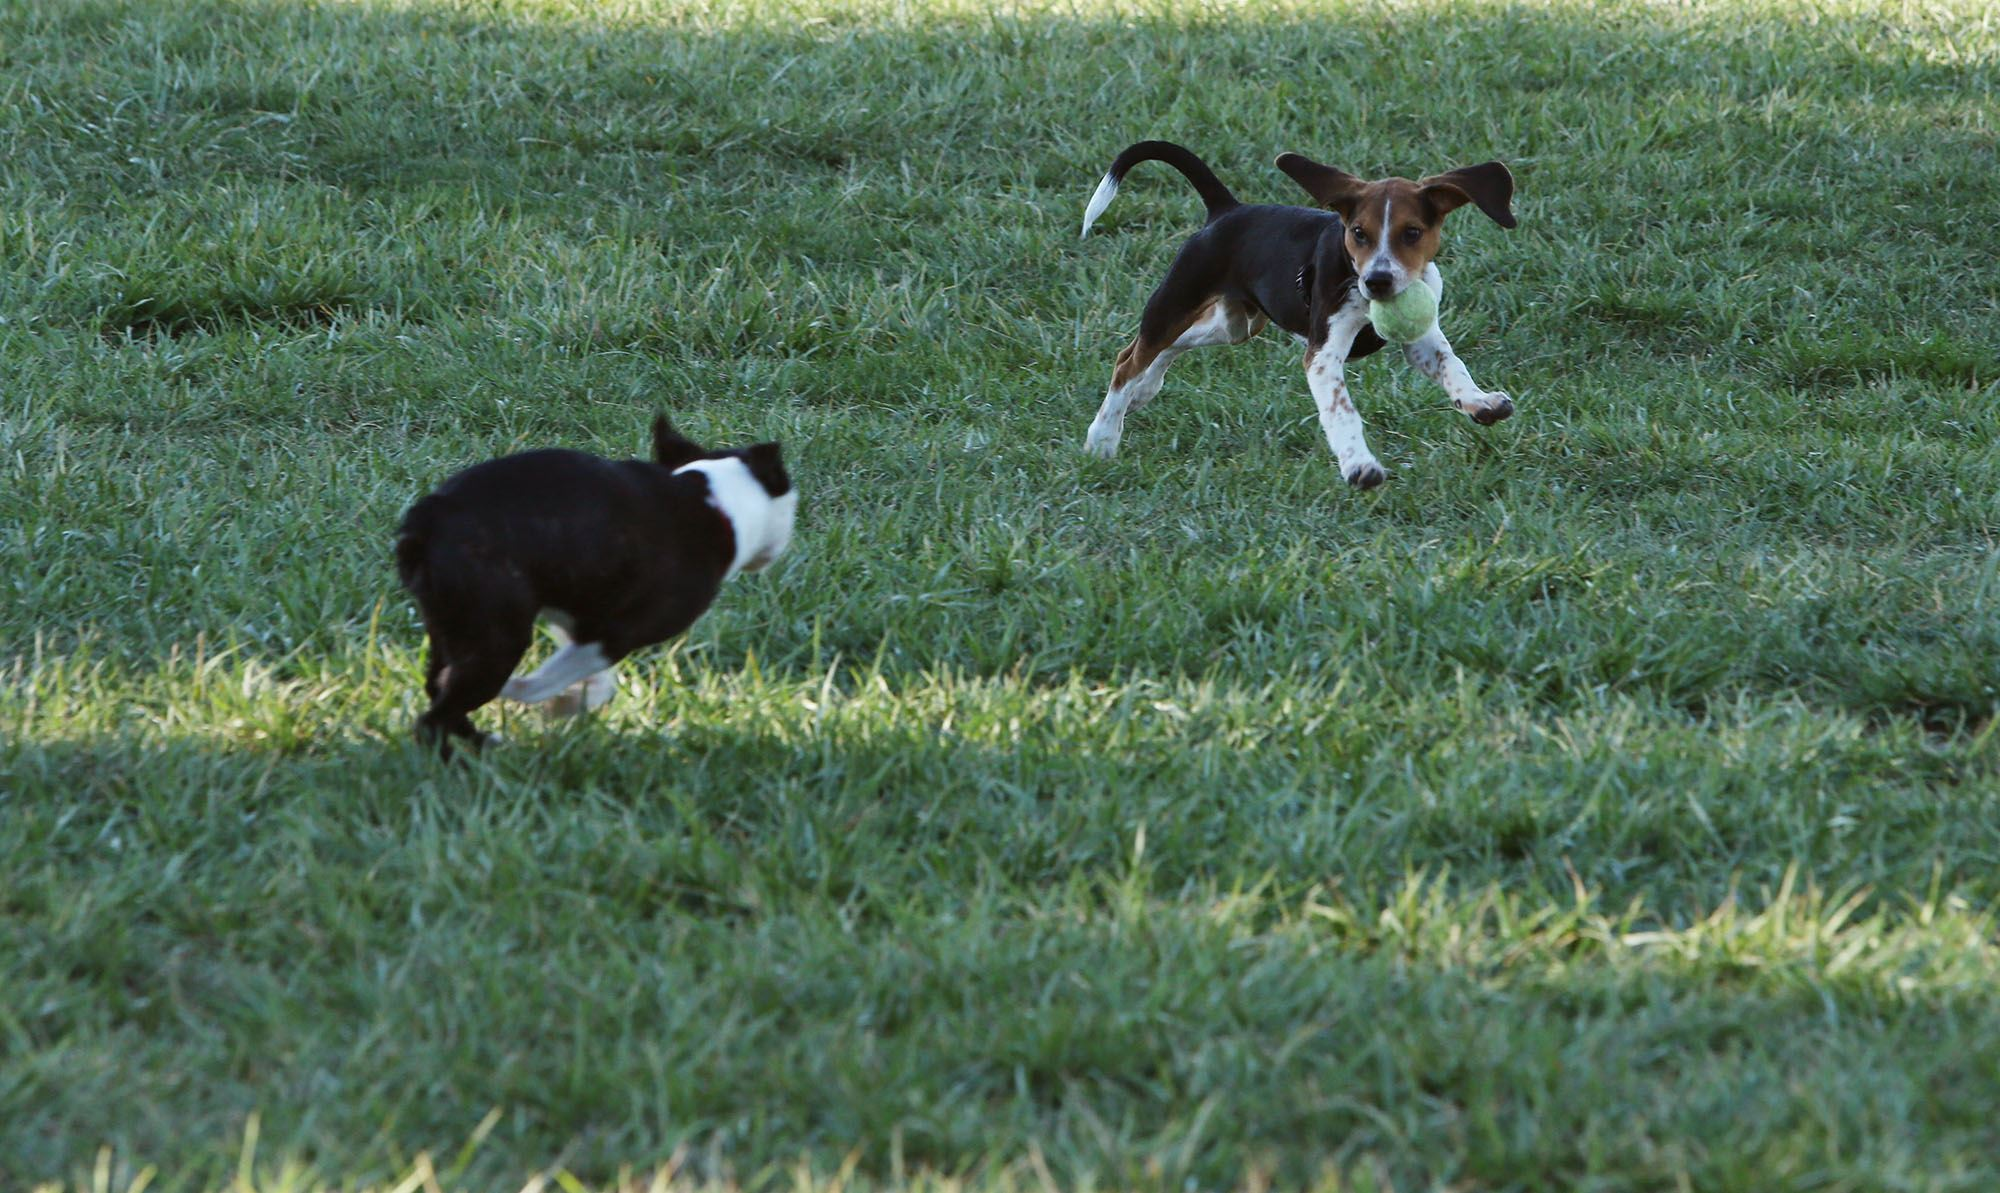 Two small dogs playing off leash